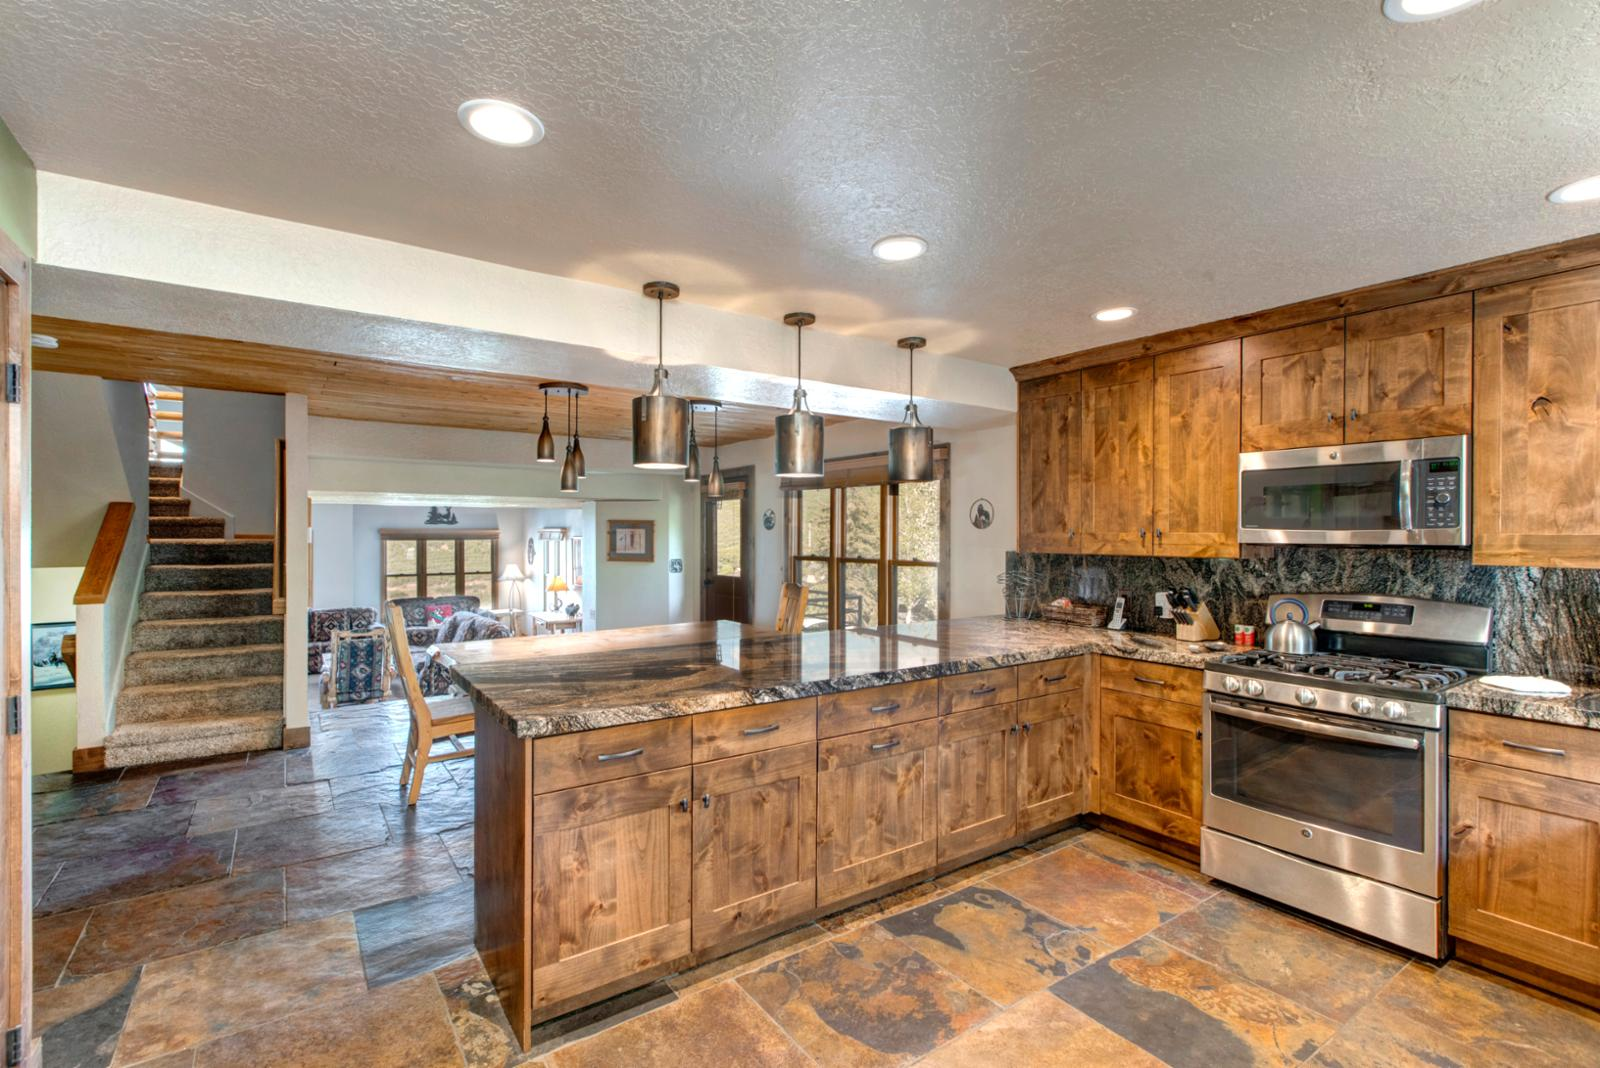 Hardwood, slate, and granite - top of the line appliances for your comfort